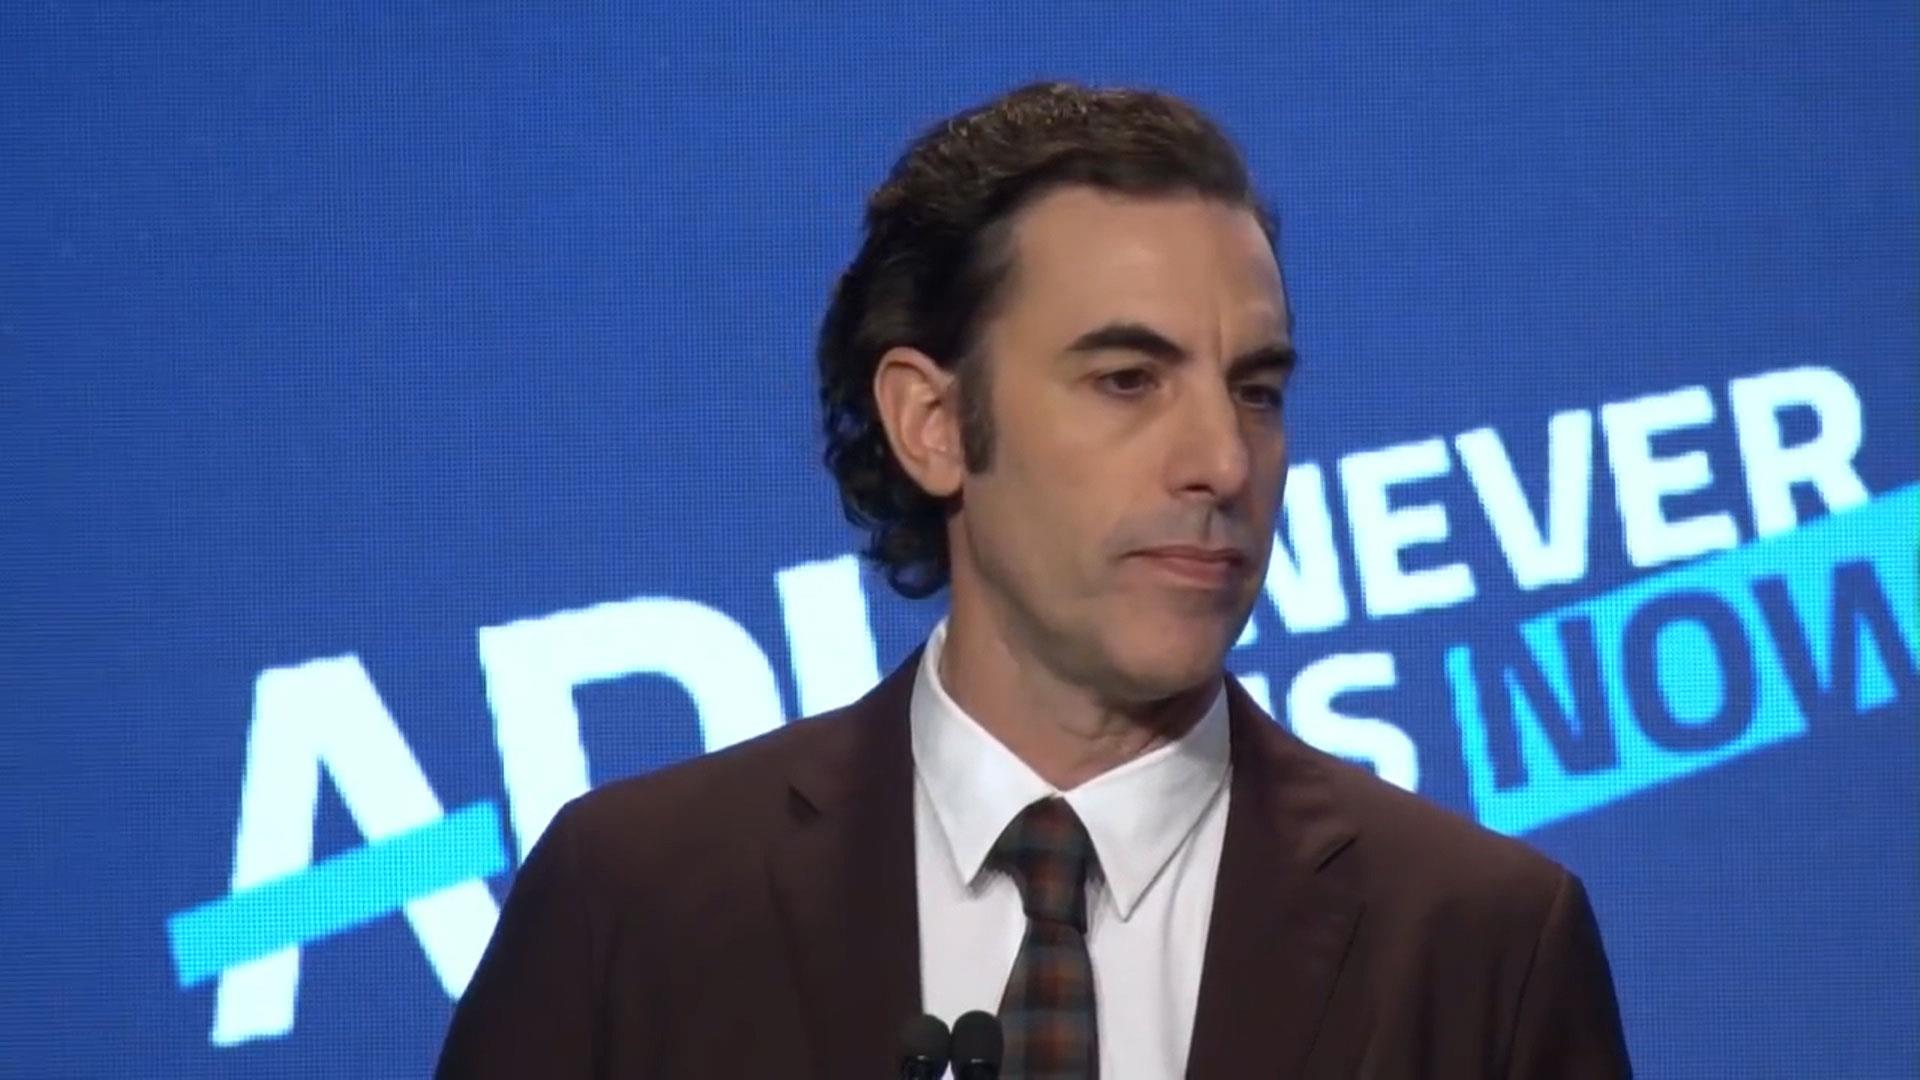 'Greatest propaganda machine in history': Sacha Baron Cohen slams Facebook, other social media companies